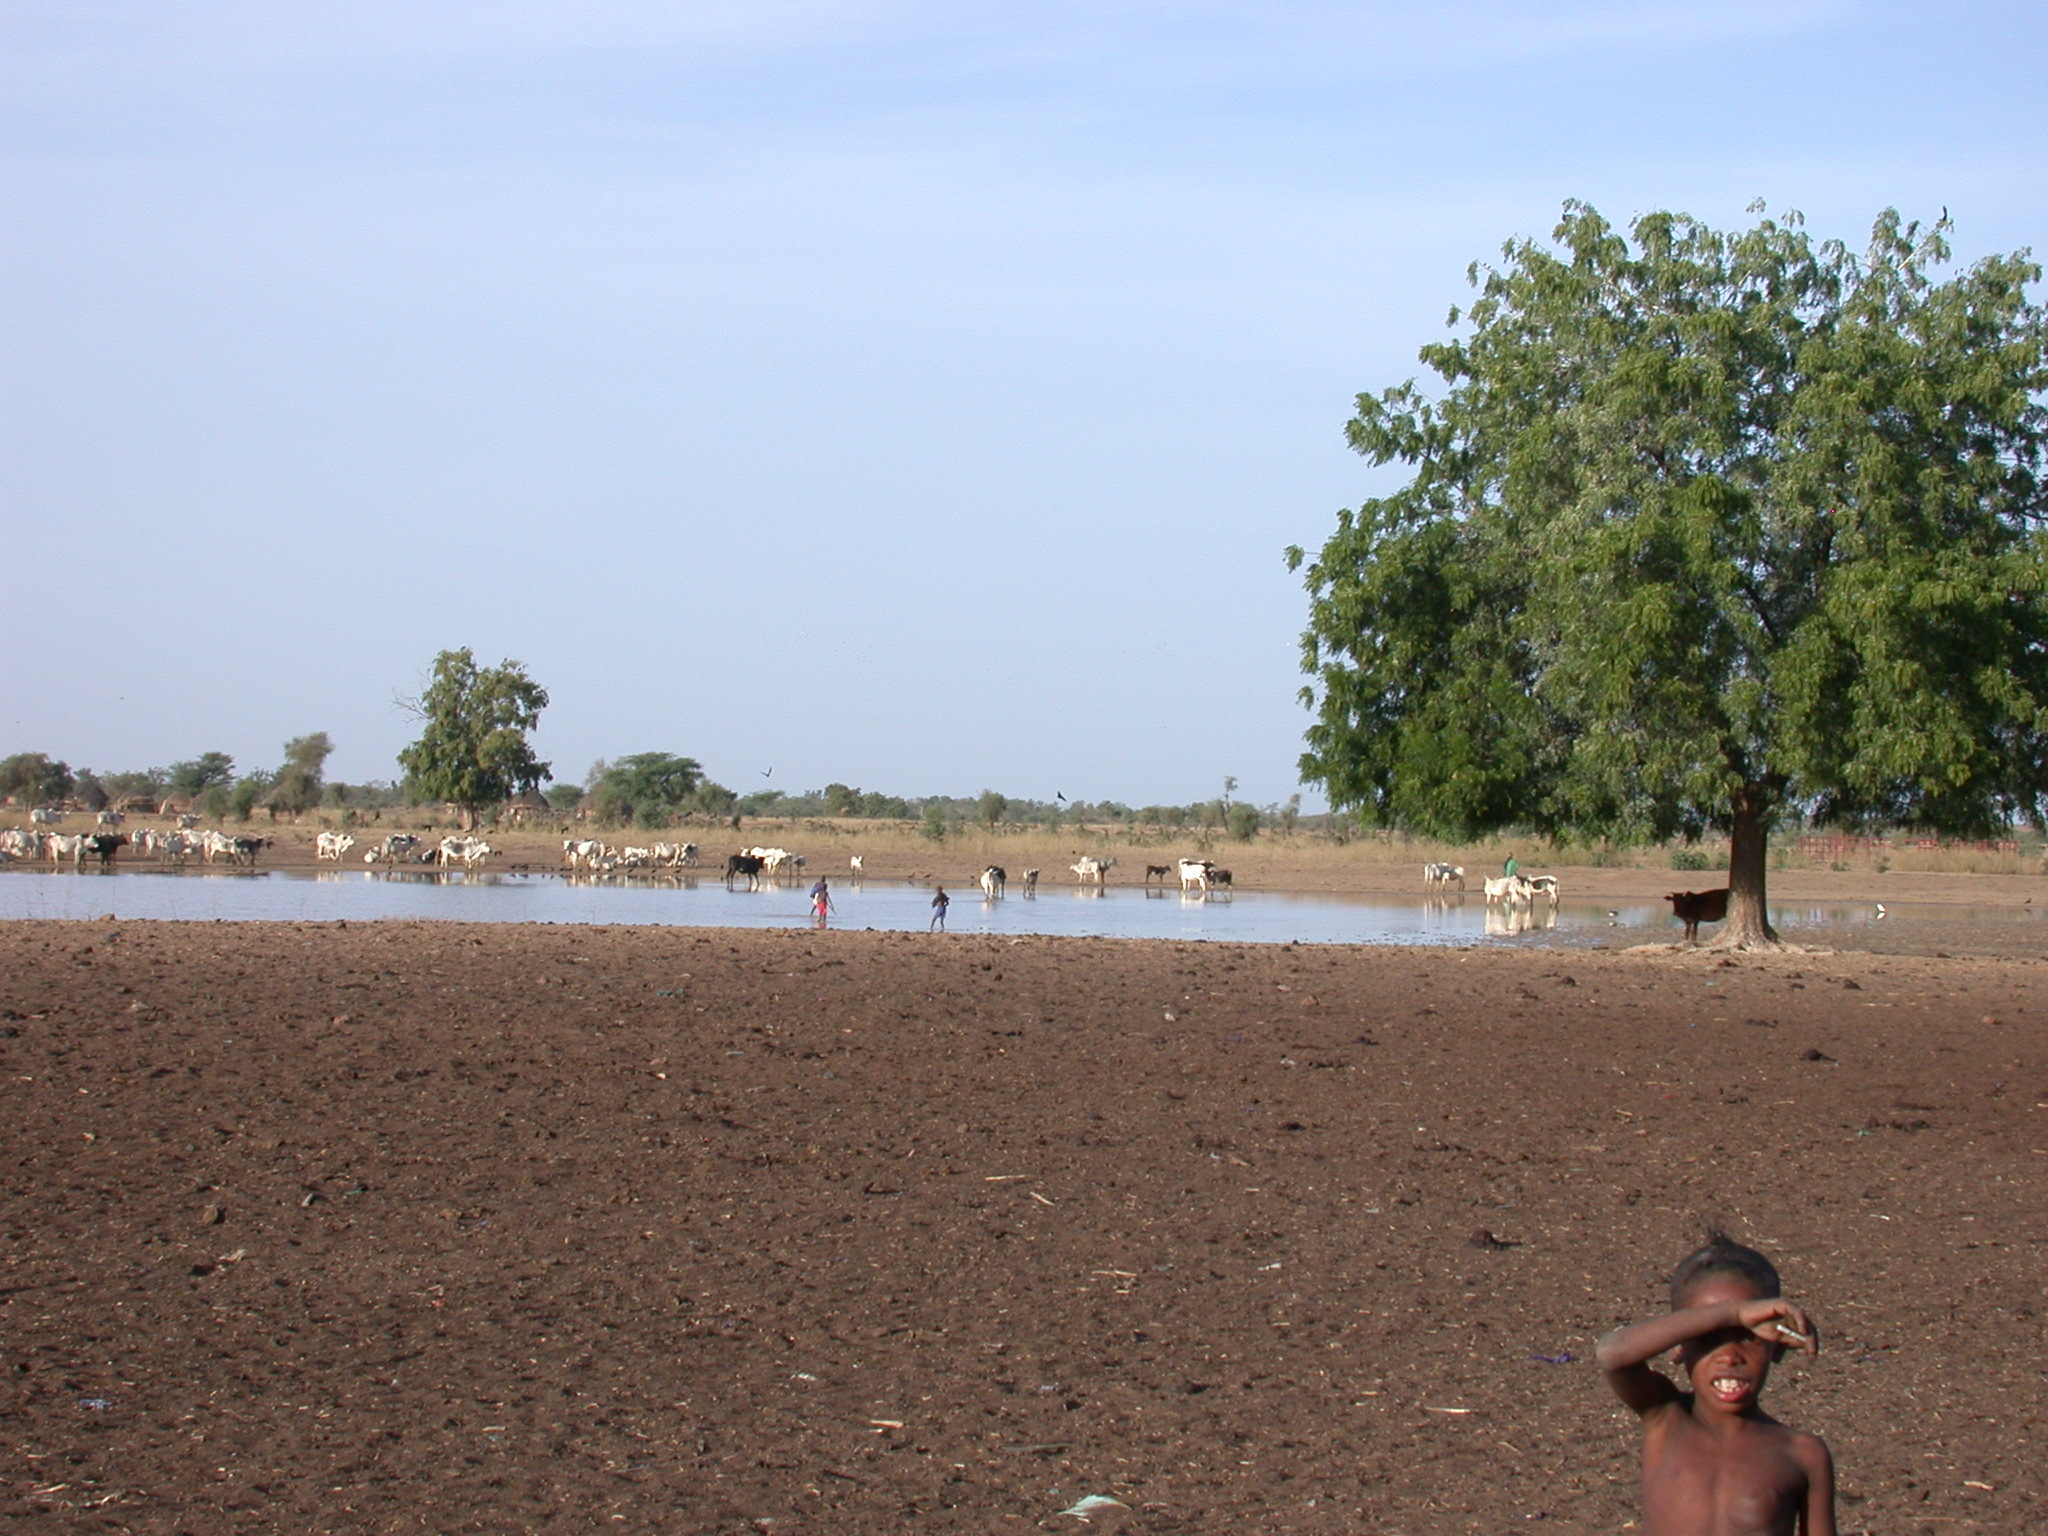 Scenery Between Nara and Sokolo, Mali